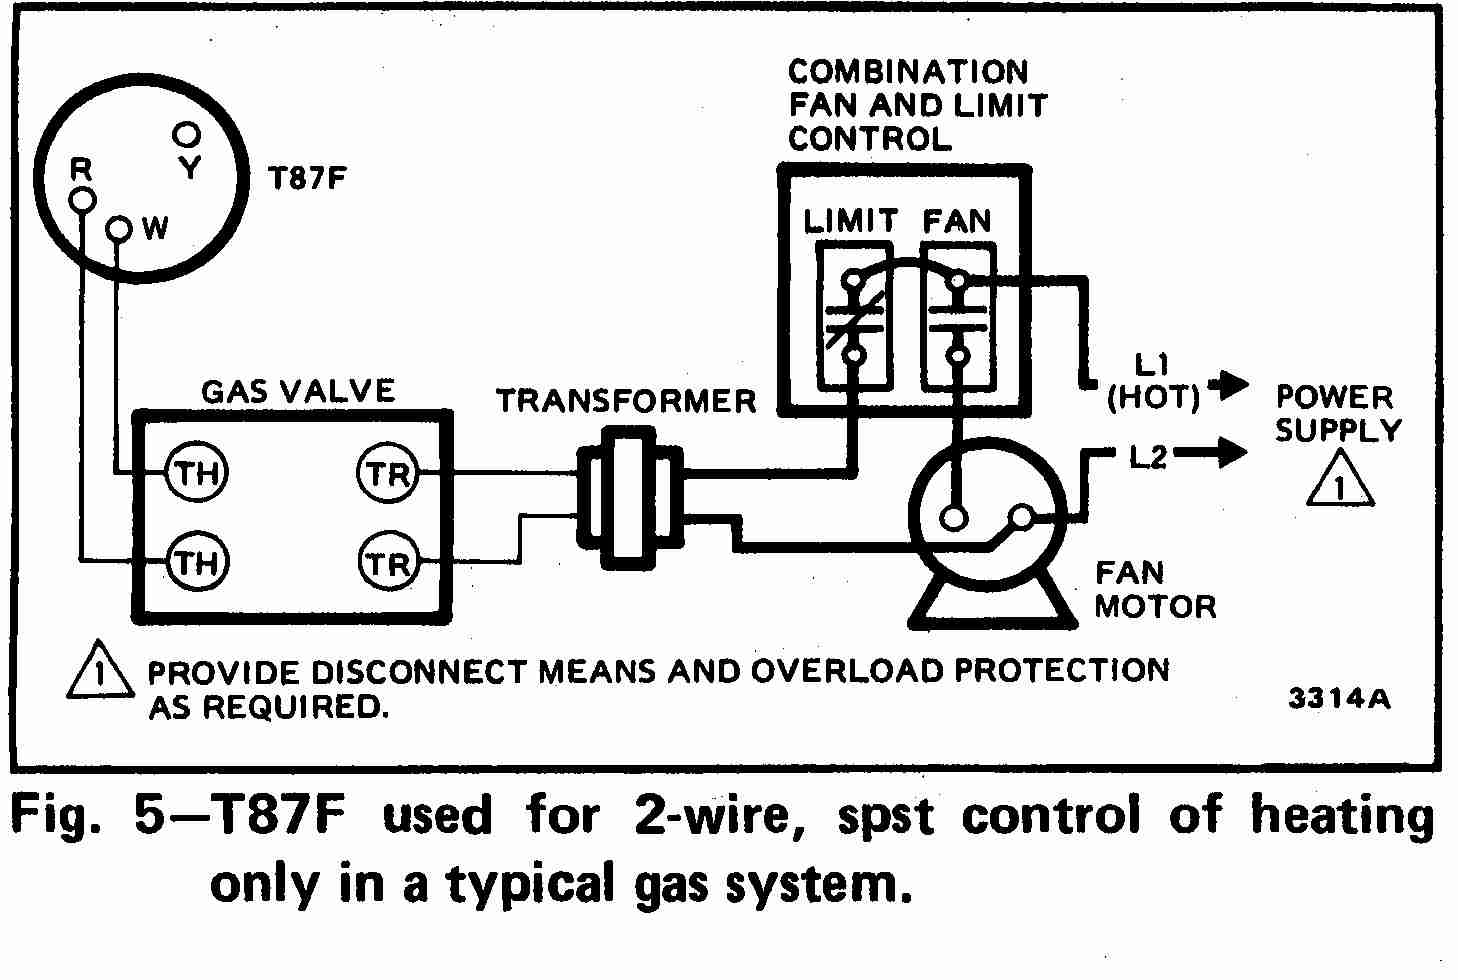 wiring diagram heat glo gas fireplace installation manual junsa us guide to wiring connections for room thermostats